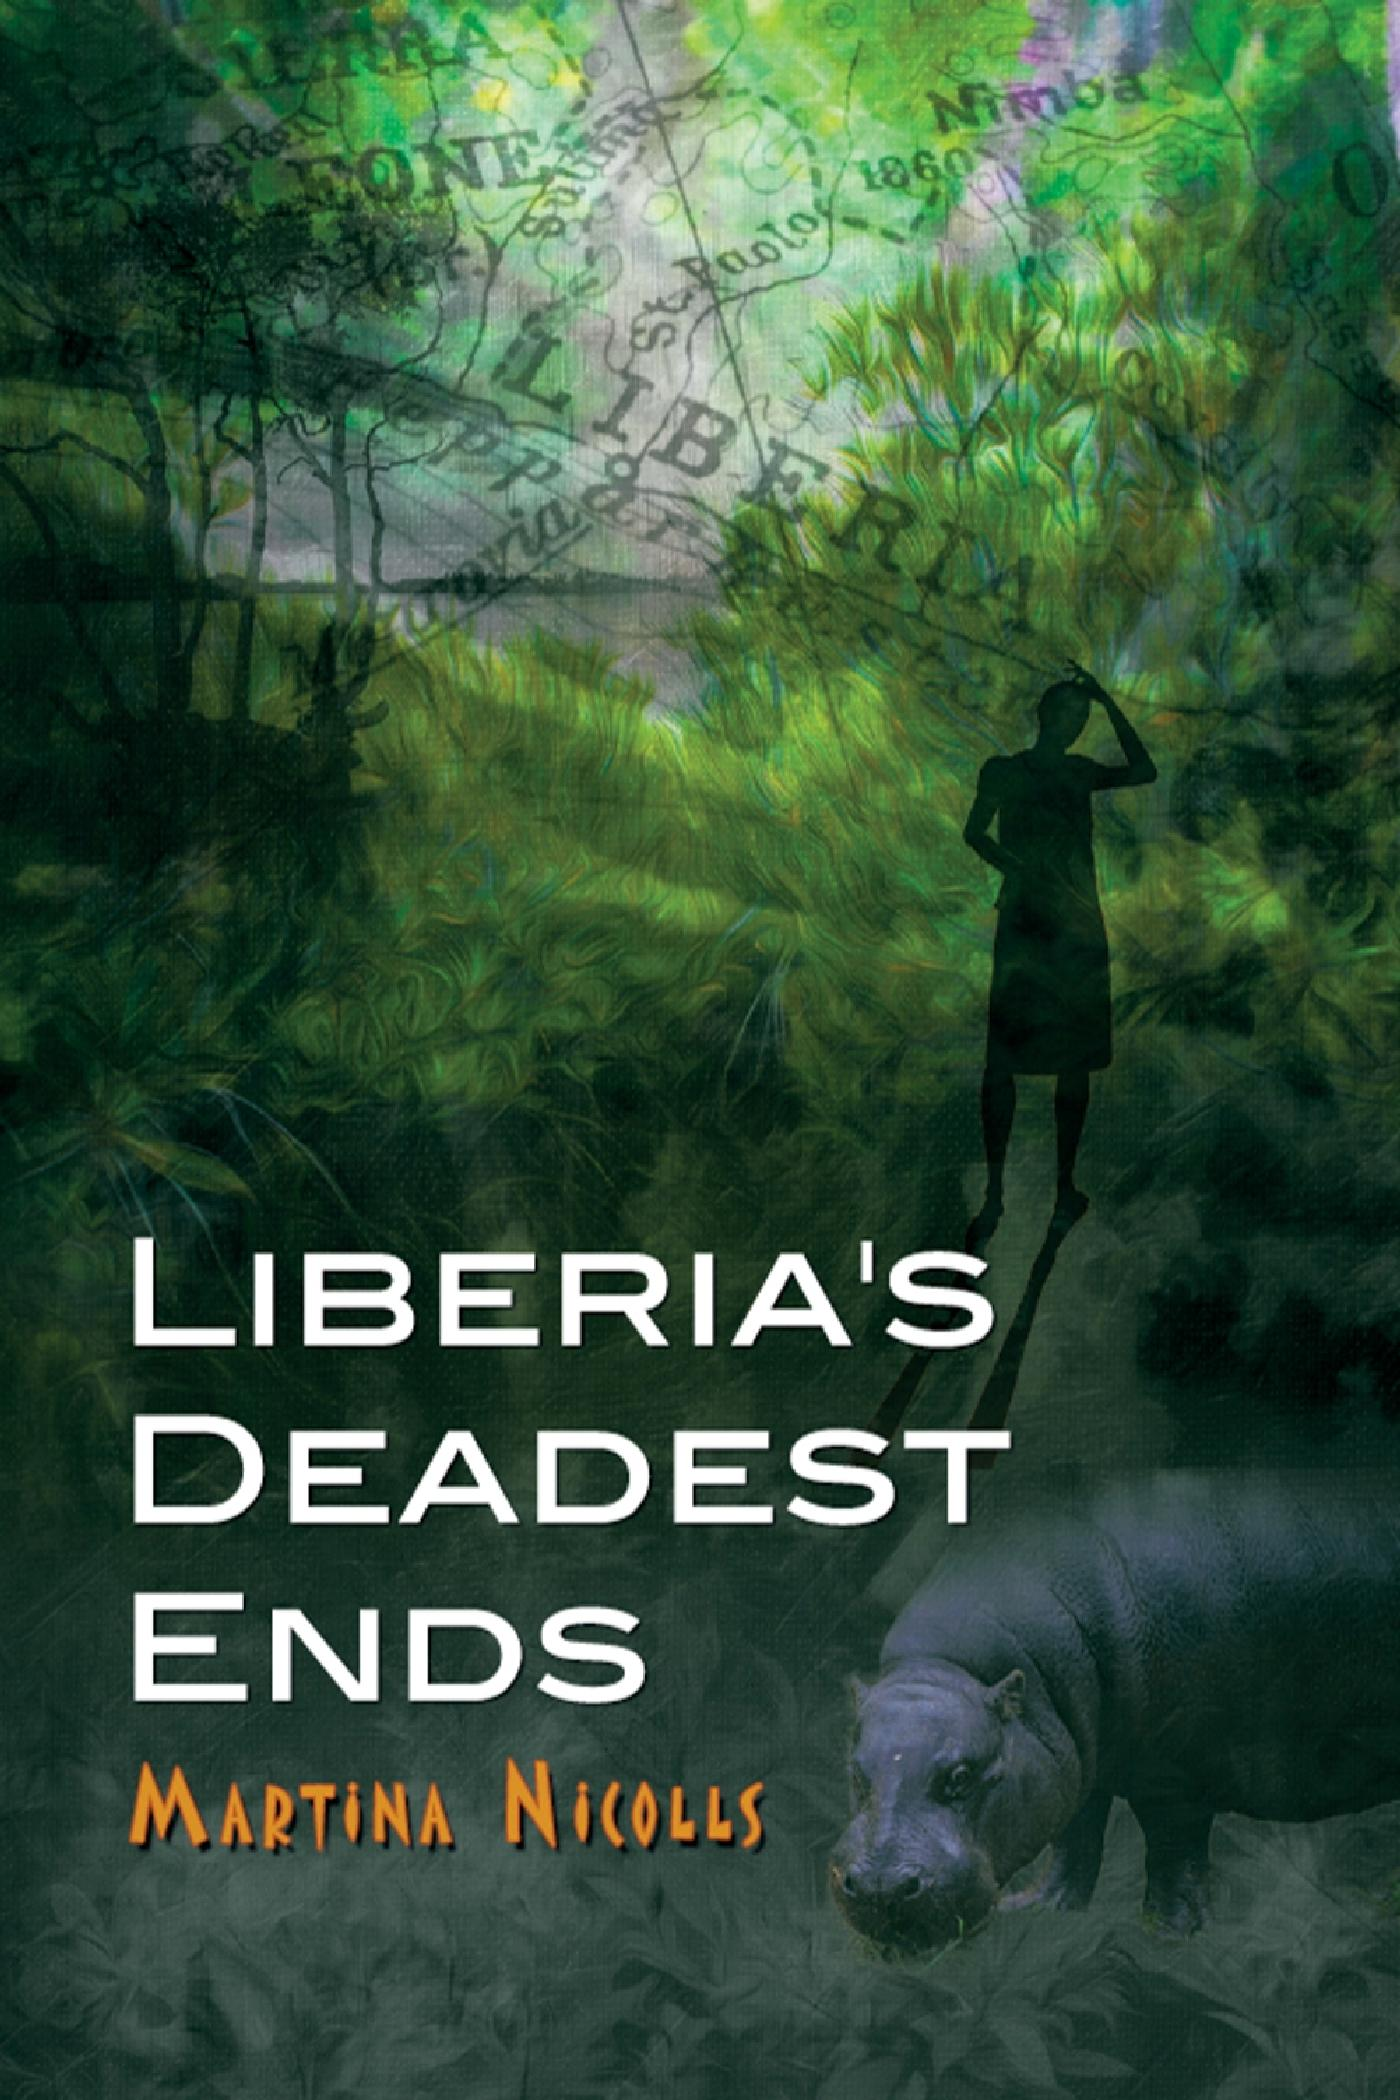 LIBERIA'S DEADEST ENDS